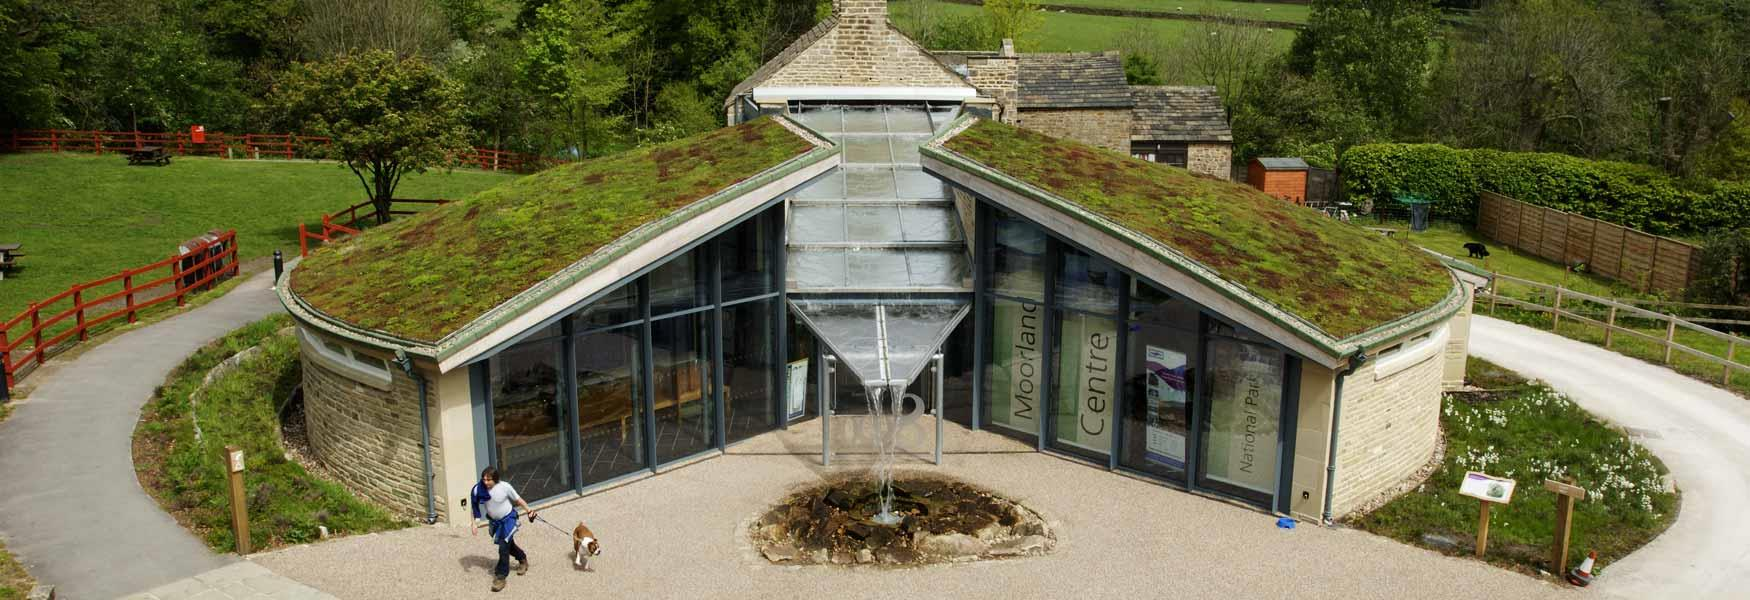 The Moorland Visitor Centre, Edale